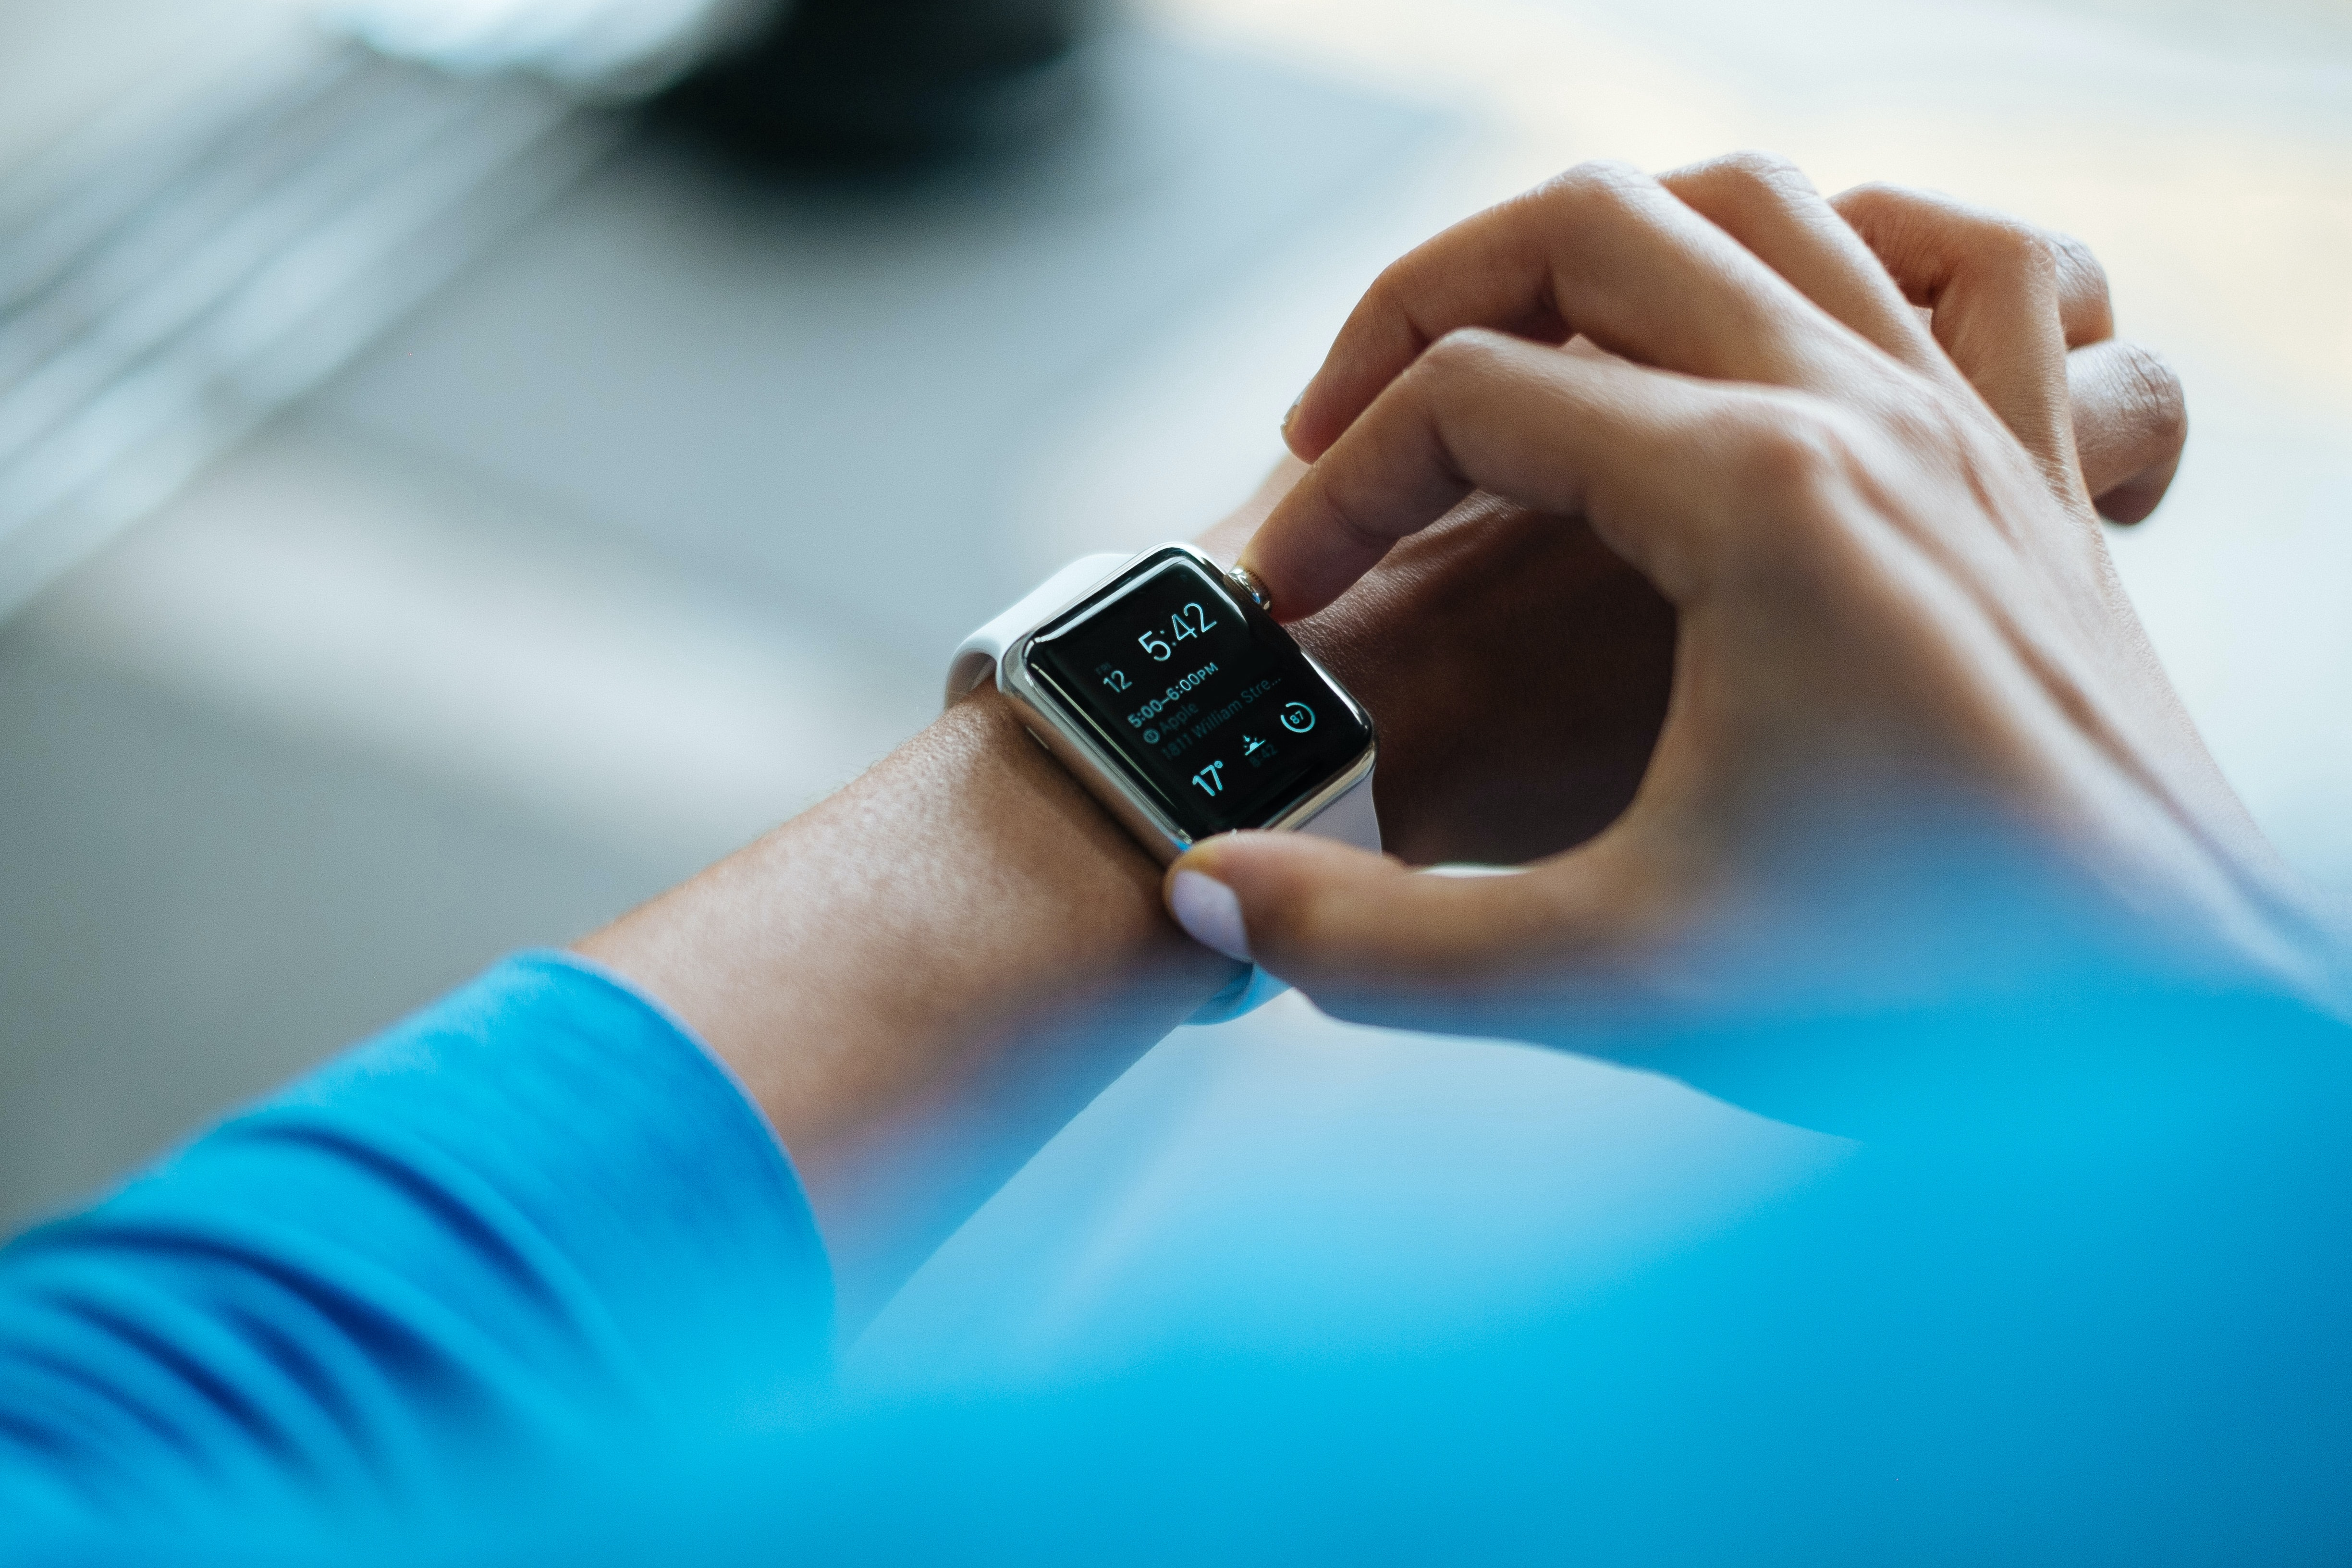 Checking data on a smart watch